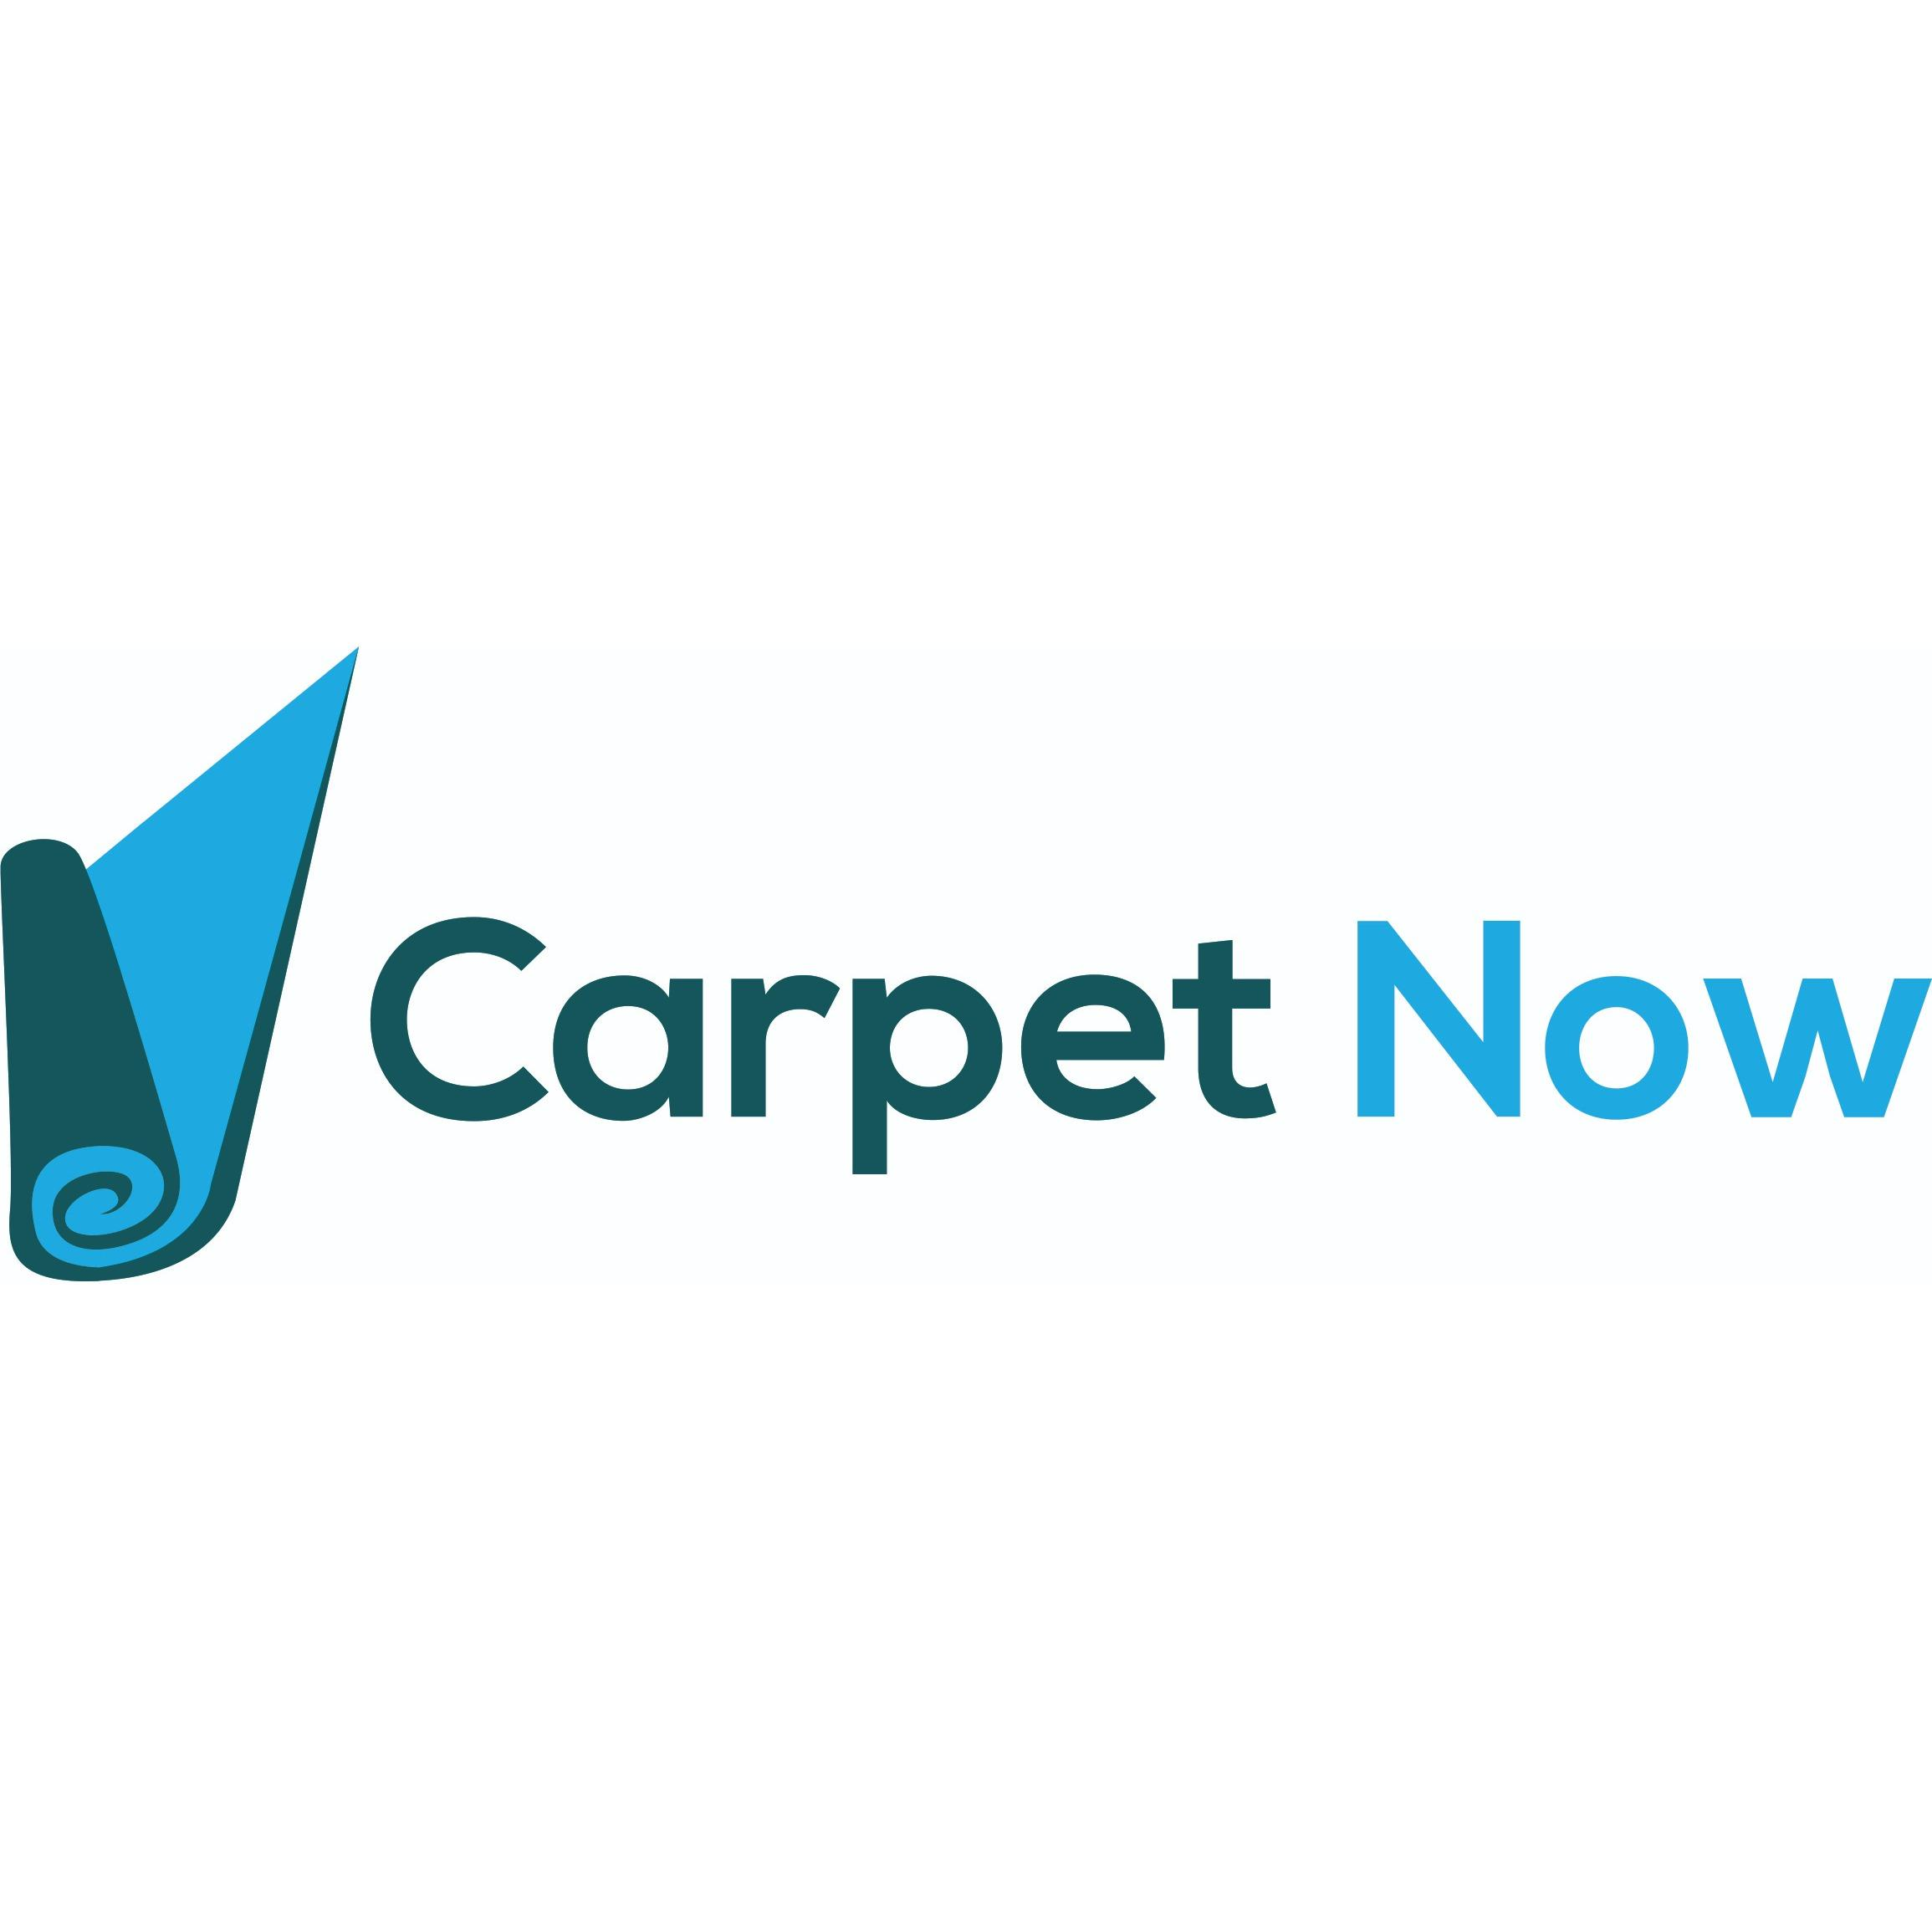 Carpet Now - Lorton, VA - Carpet & Floor Coverings